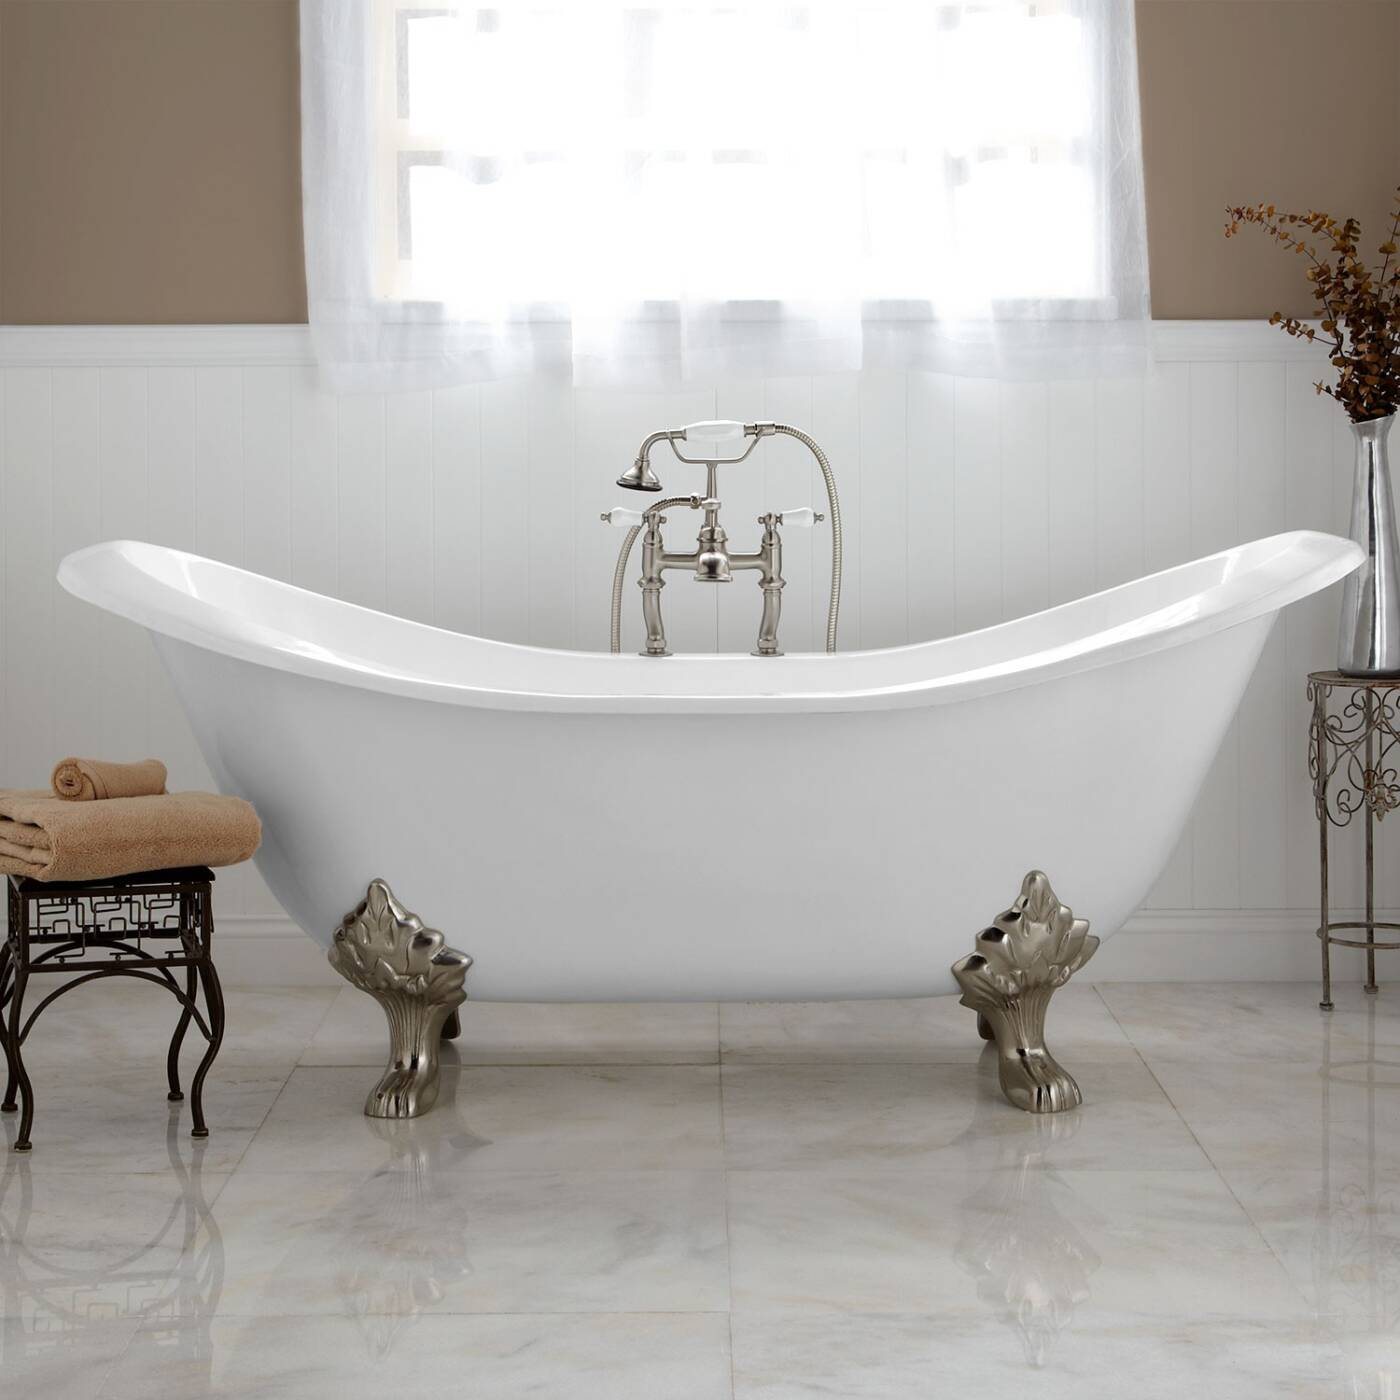 What Different Types of Tubs are there to Use in Your Custom Home ...